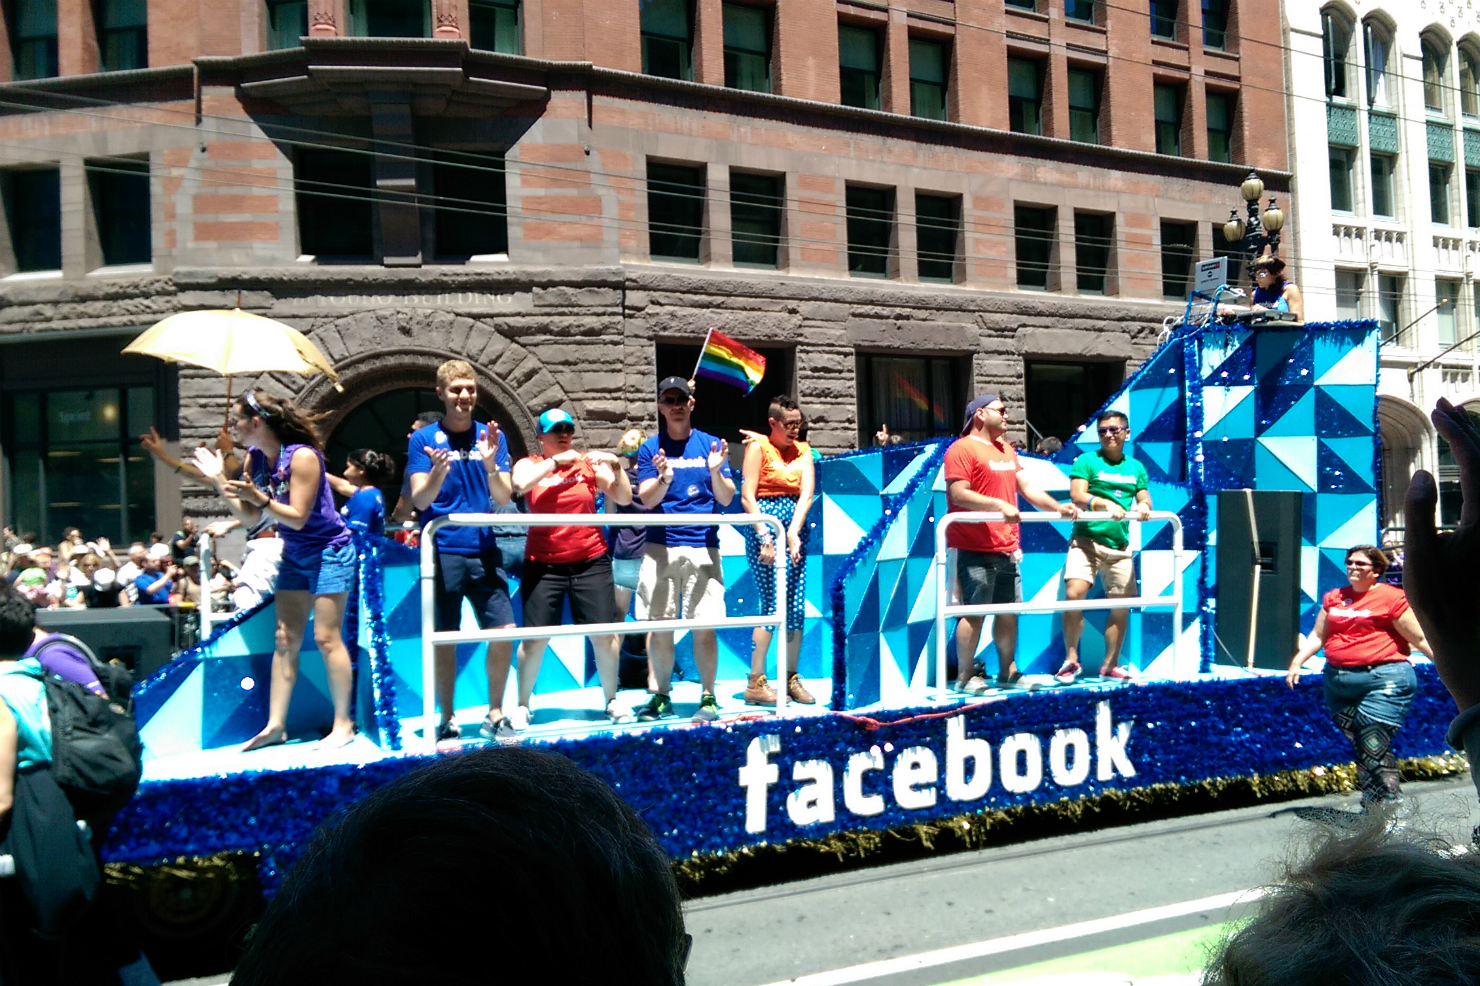 Facebook makes little progress in race, gender diversity